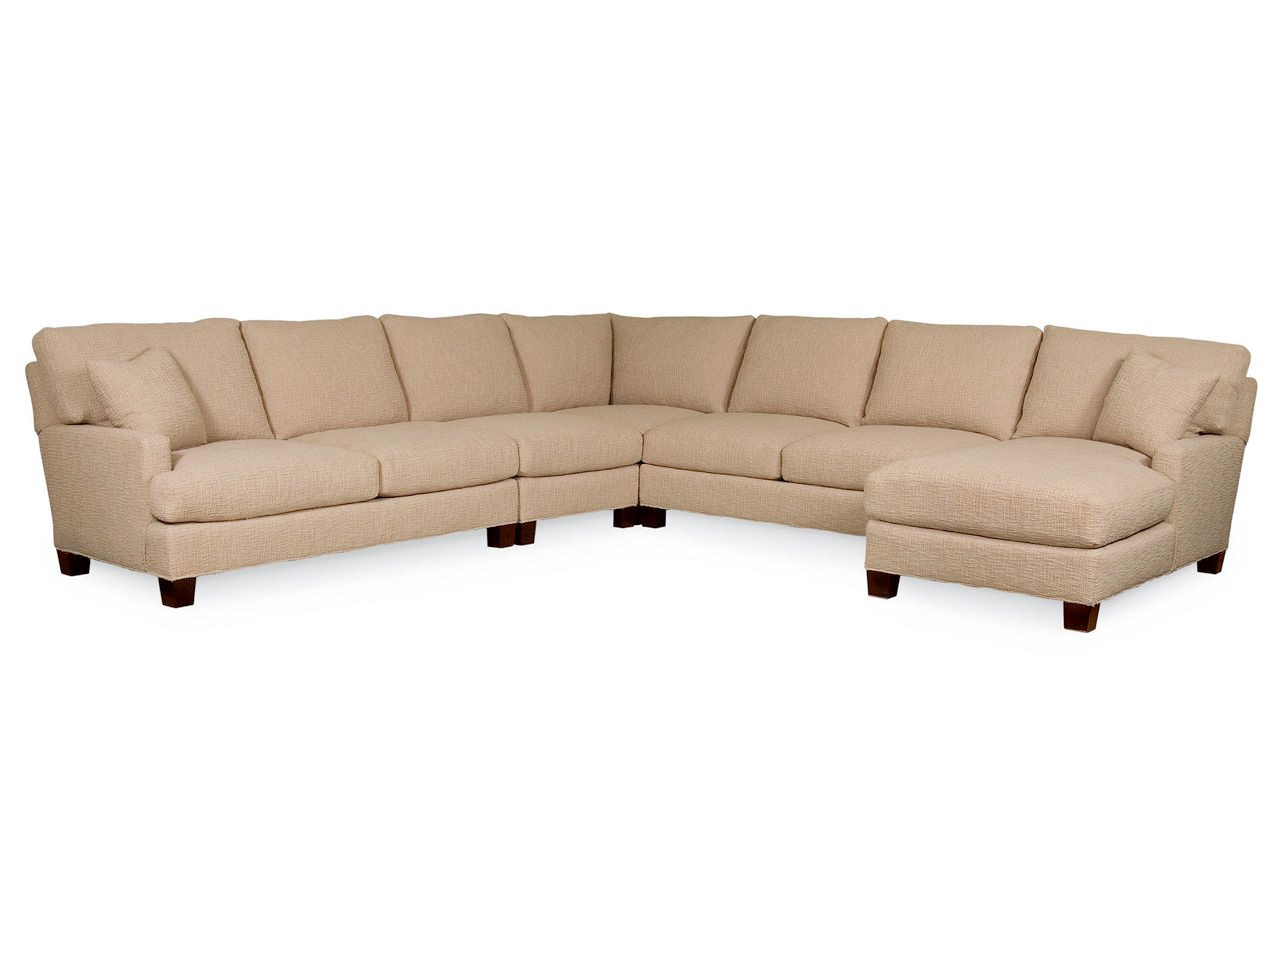 Incredible Aiden Sectional Series Upholstered Sectionals Sofas Gmtry Best Dining Table And Chair Ideas Images Gmtryco